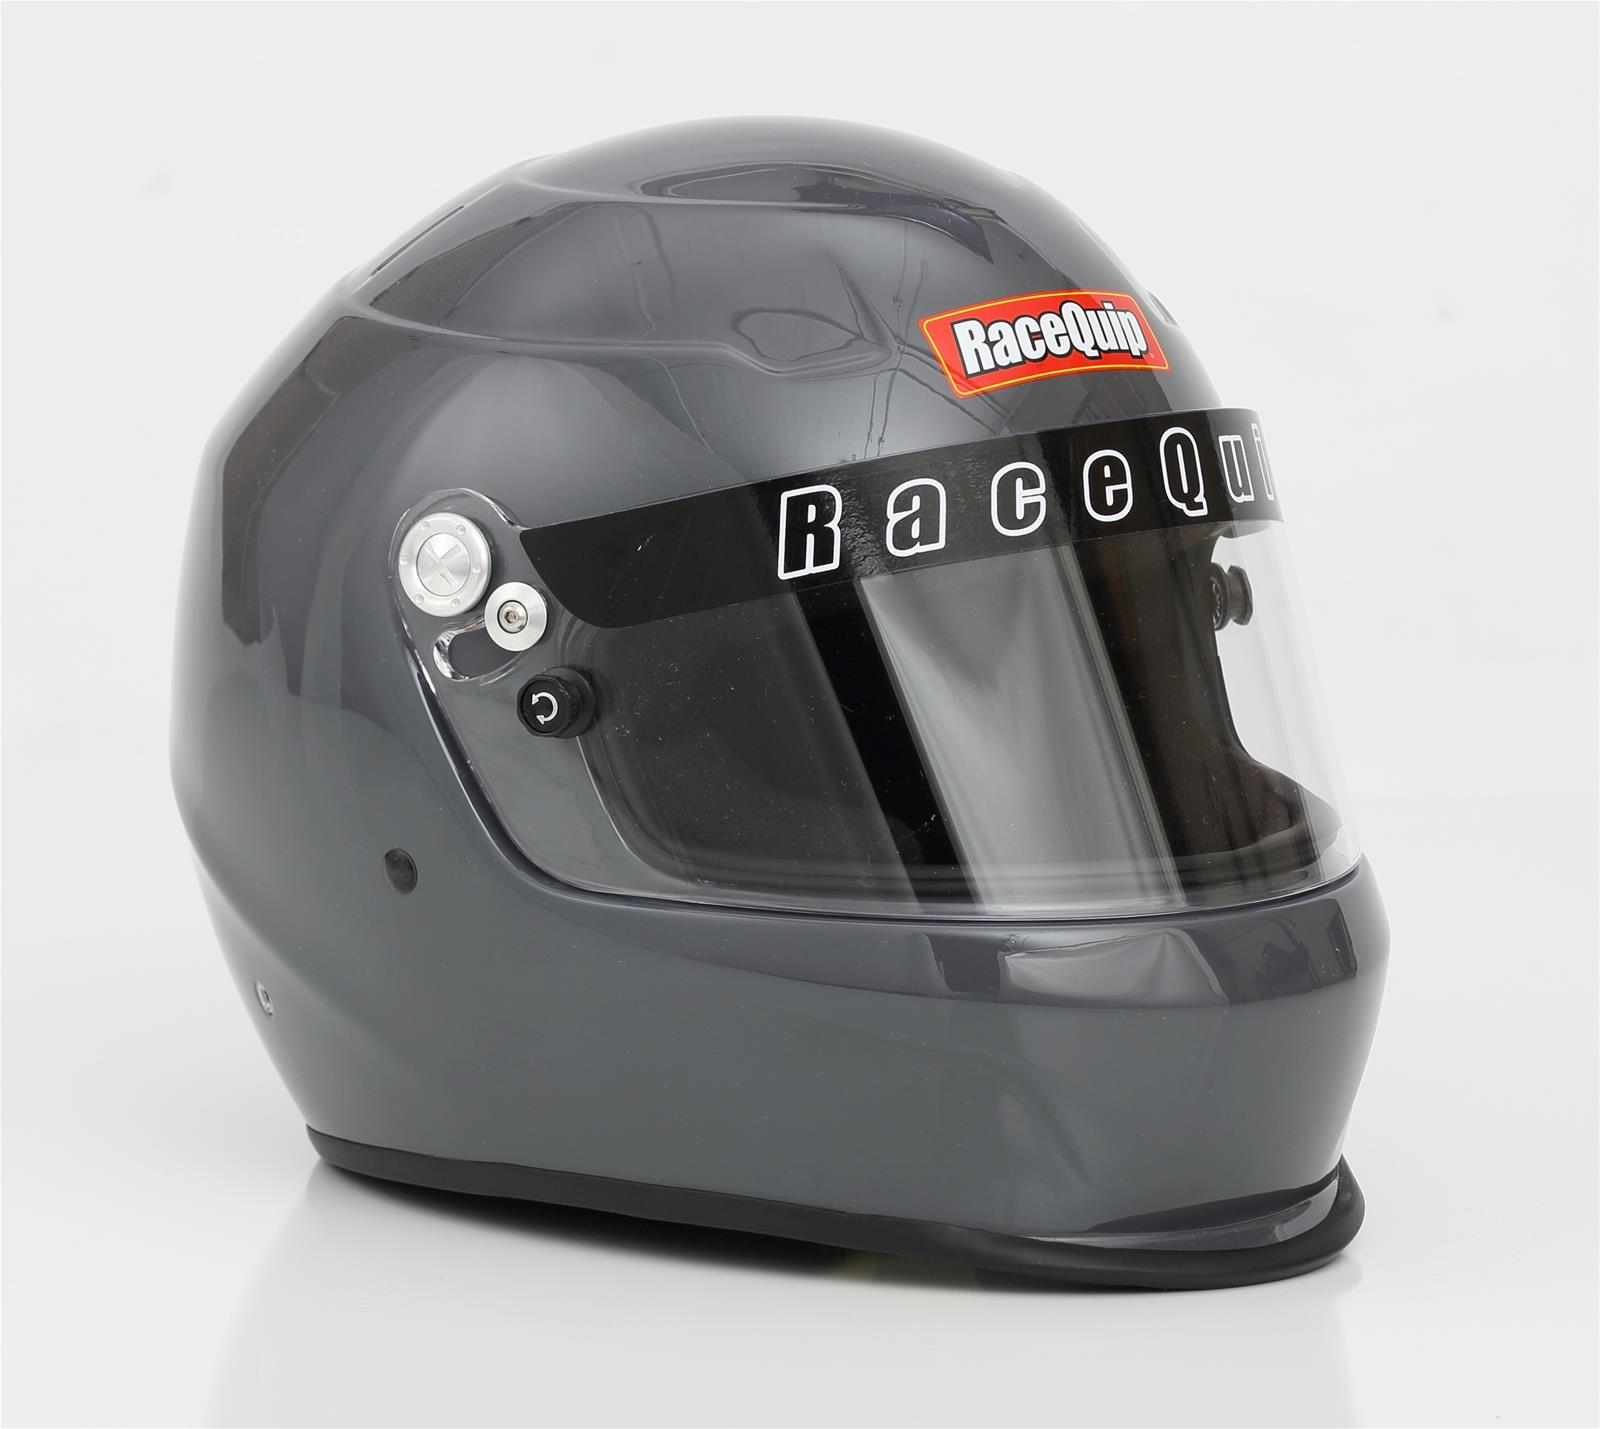 Auto Racing Helmets >> Racequip Youth Sfi 24 1 Full Face Auto Racing Helmets 2236693